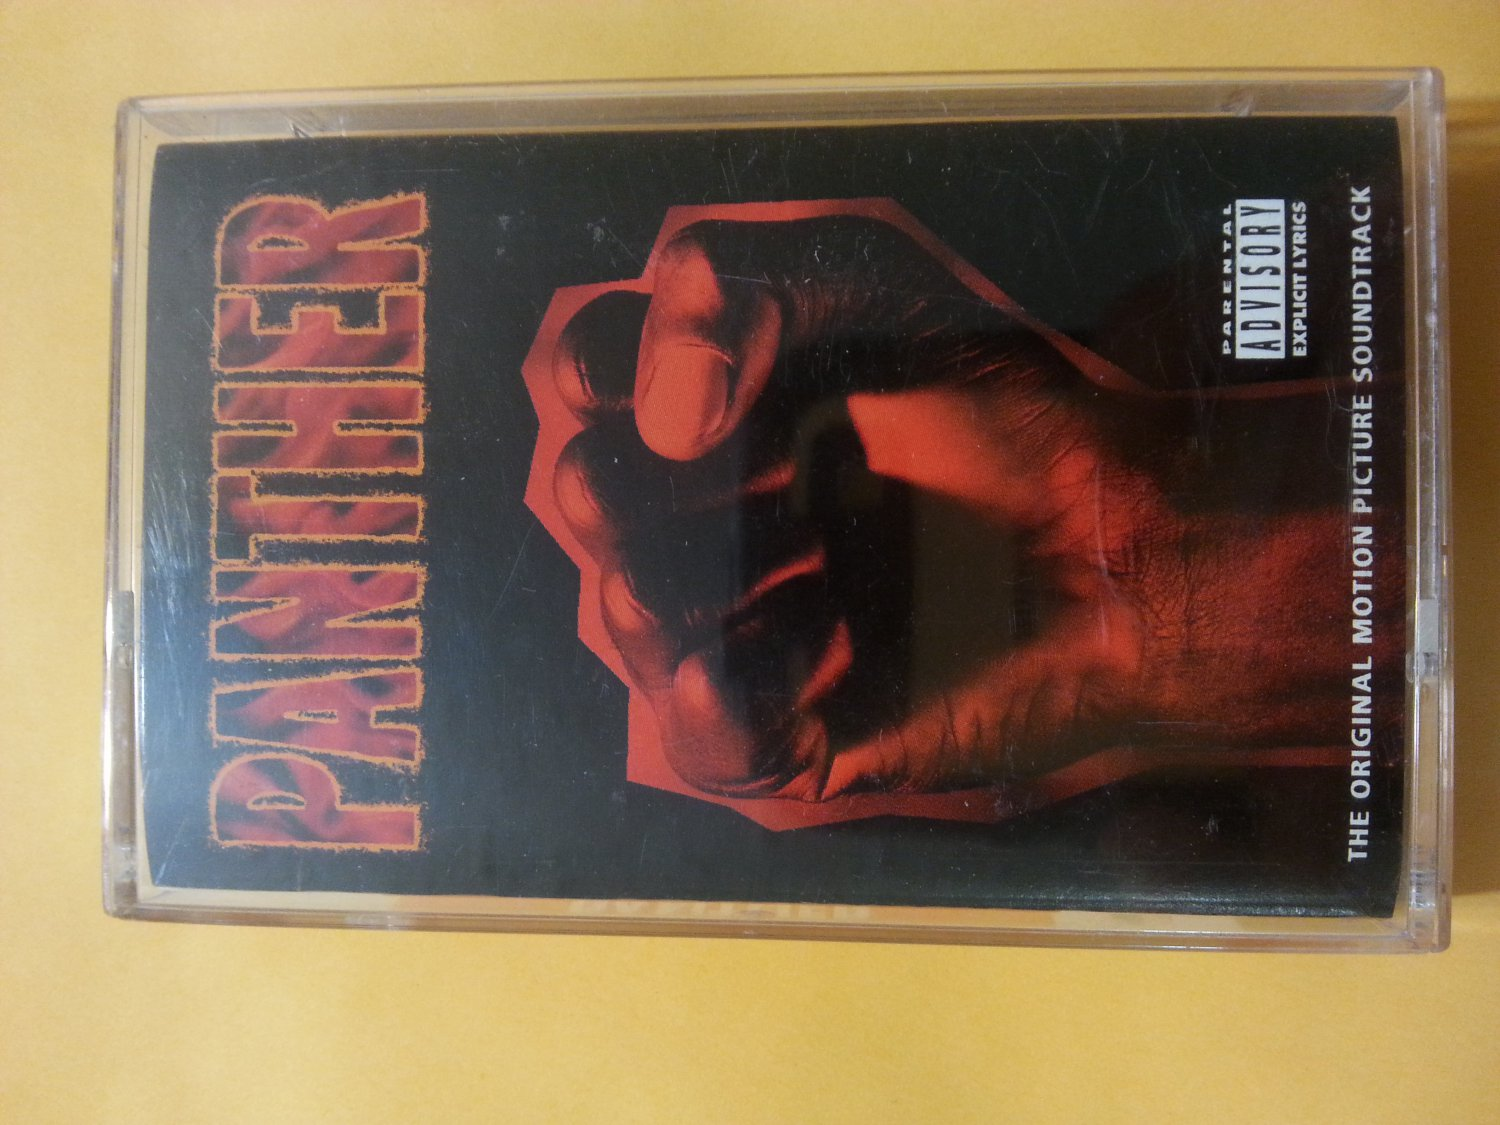 Panther Original Motion Picture Soundtrack Cassette Tape